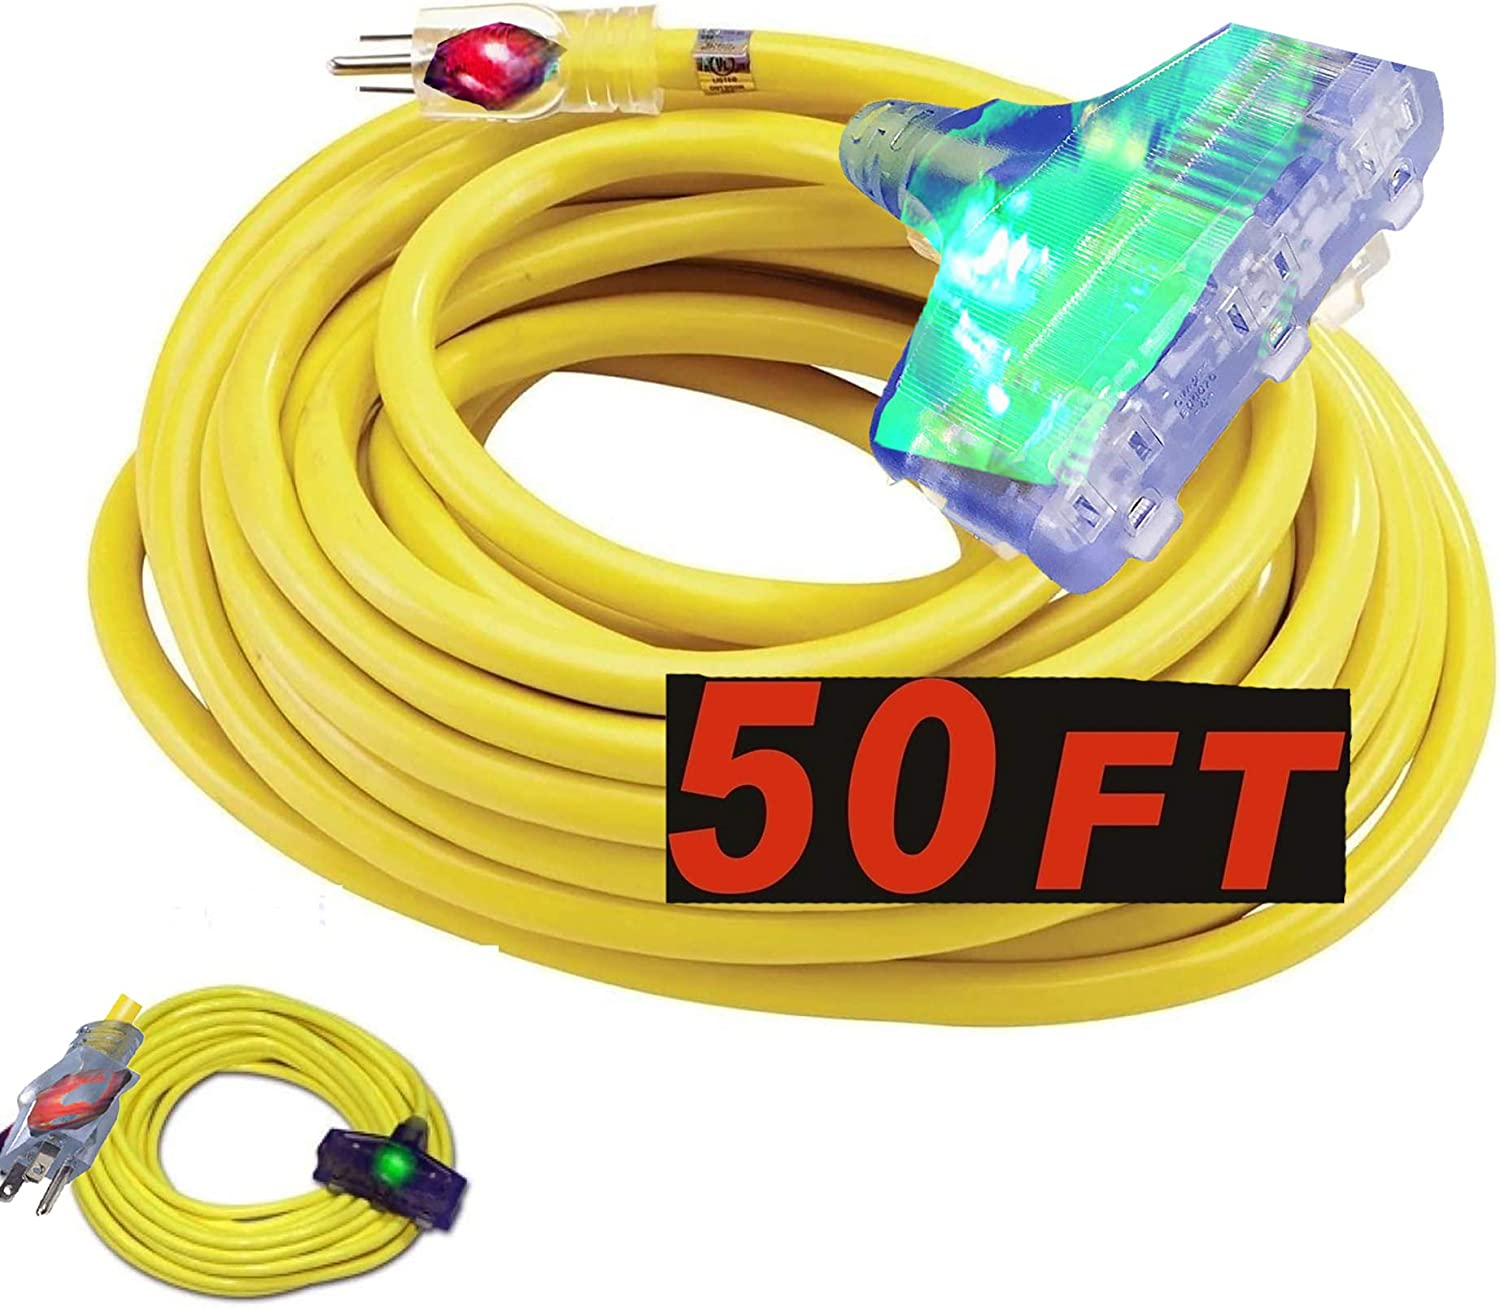 yellow extension cord 10 3 50 Gauge Extension Max 67% OFF Heavy Cord Sales of SALE items from new works D ft